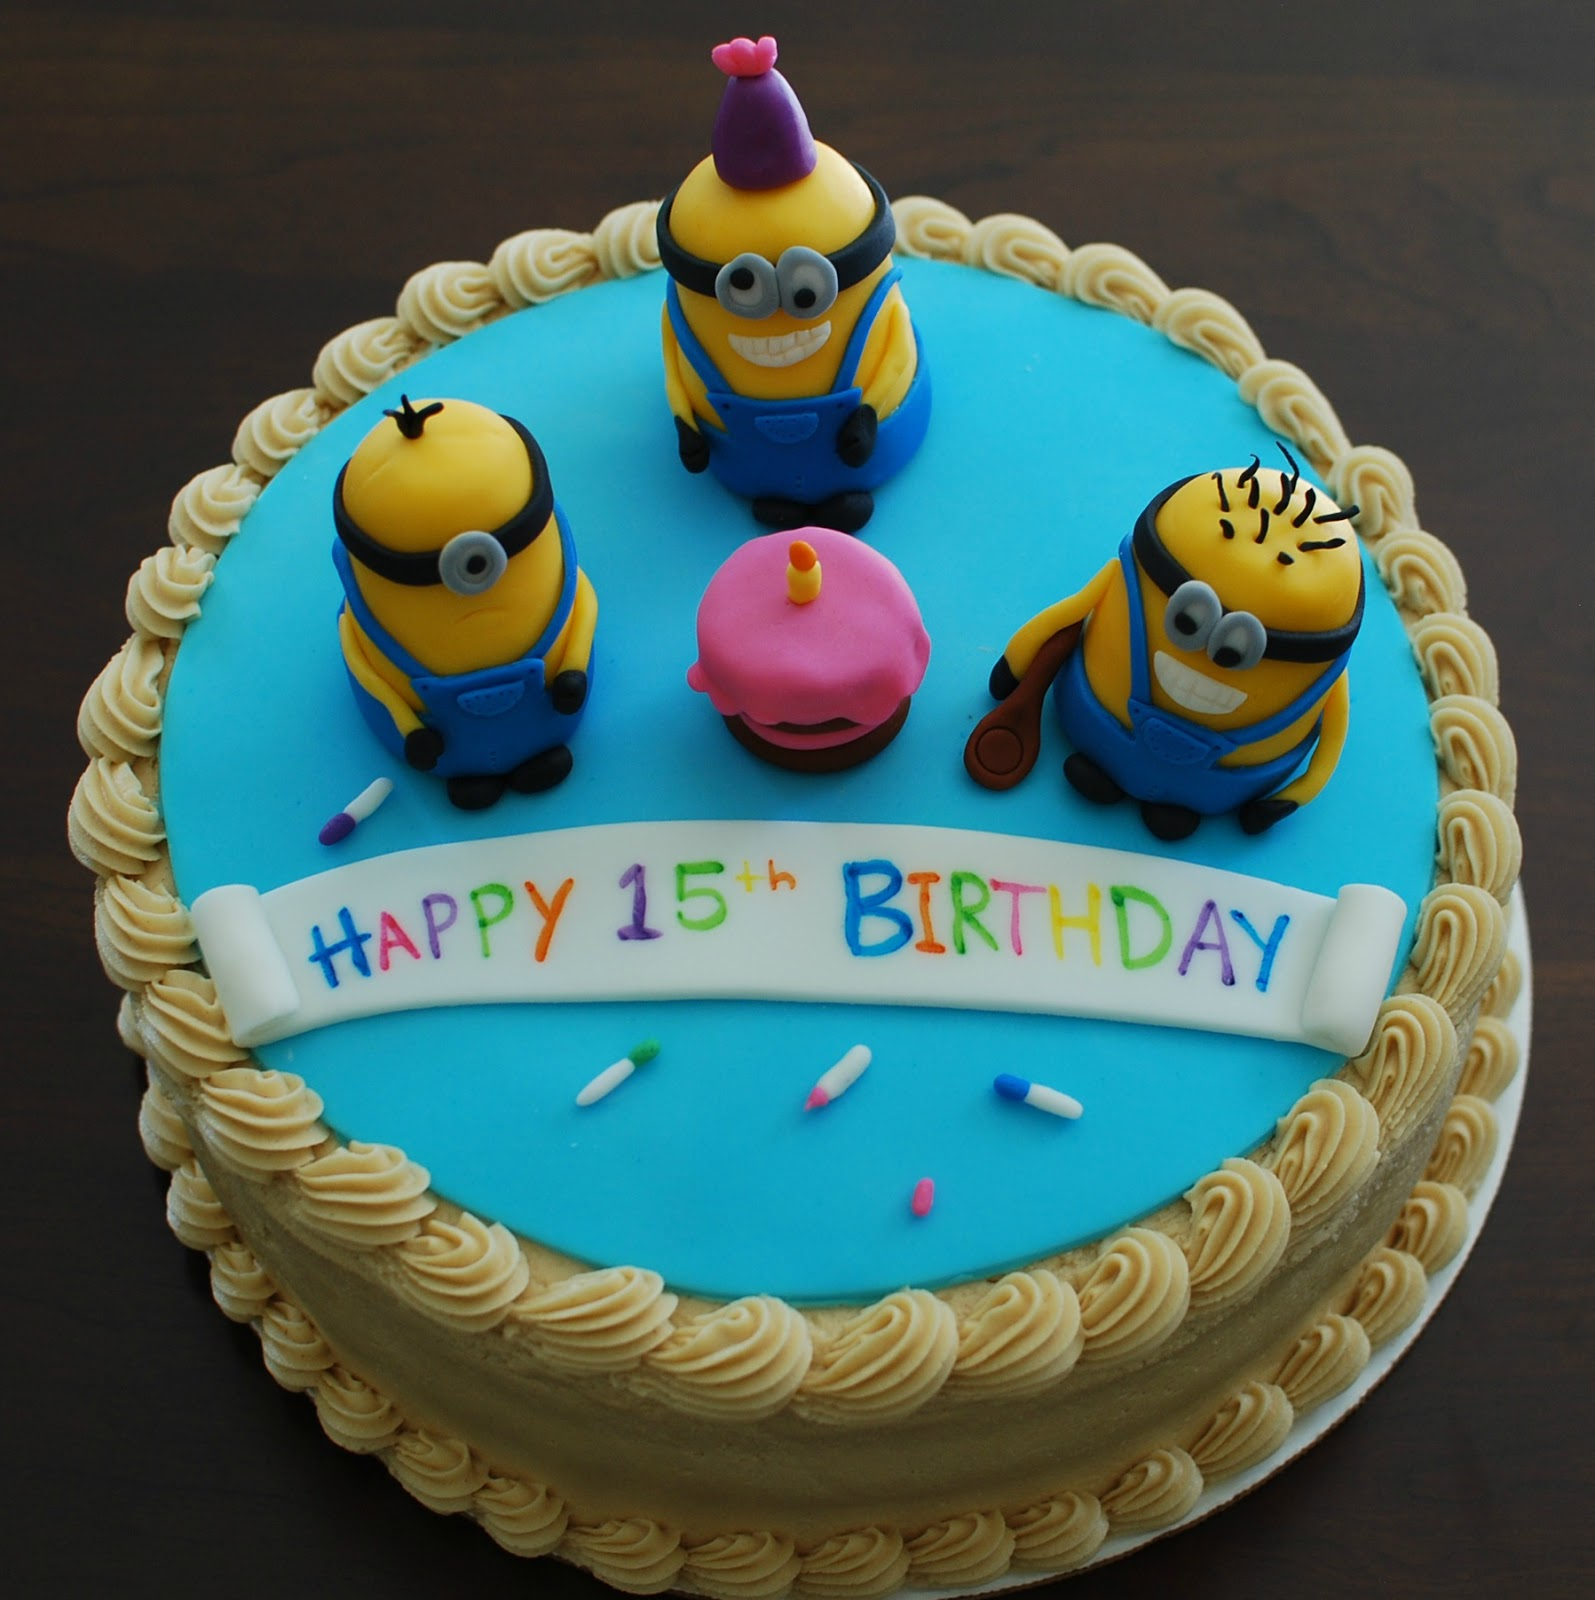 Despicable Me 2 Minions Party Cake Topper 8 candles Decoration Holder See more like this Despicable Me Minions Edible Birthday Cake Image Topper Frosting Icing 1/4 Sheet Brand New.